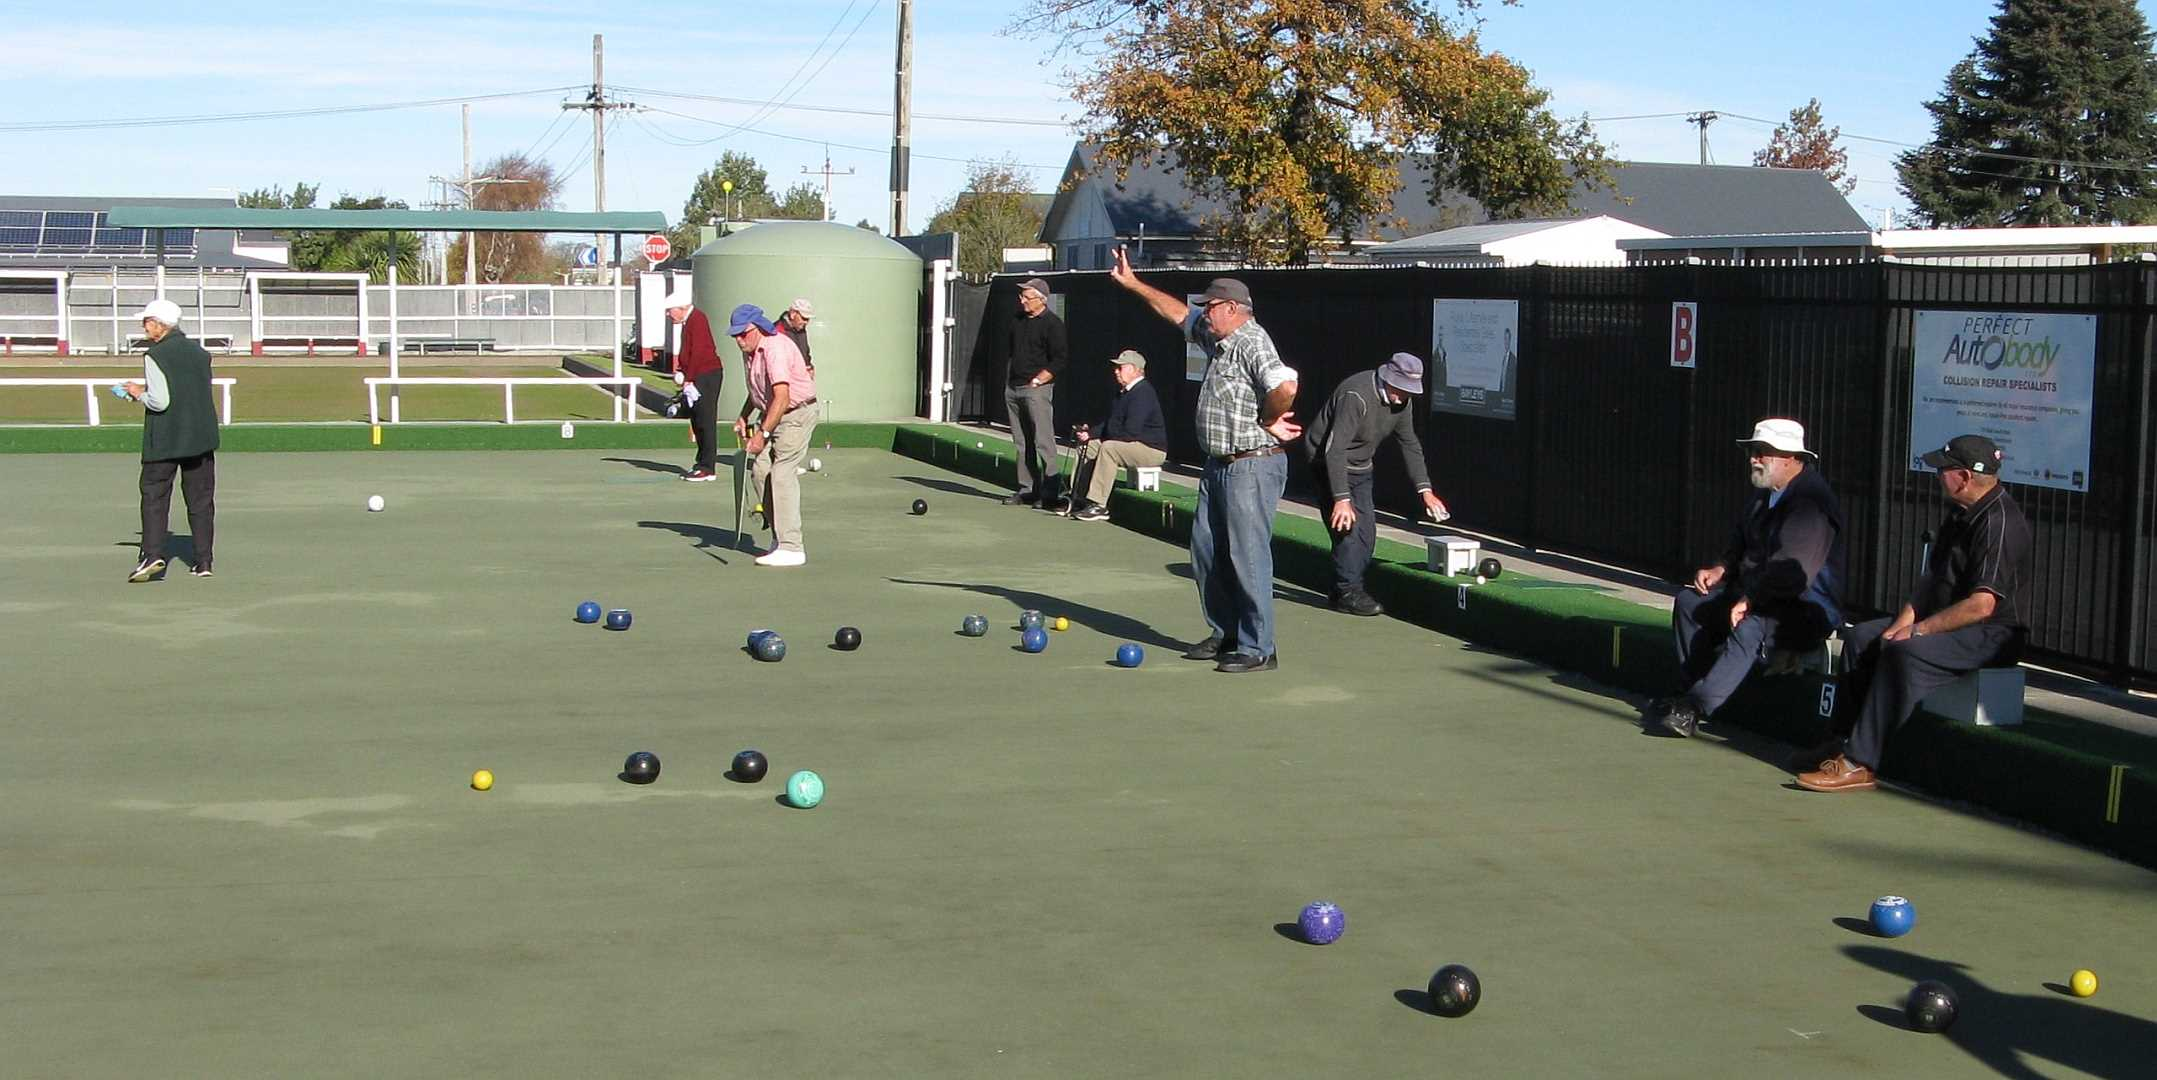 The Winter Roll-up - 26 Bowlers - 20 May 2021